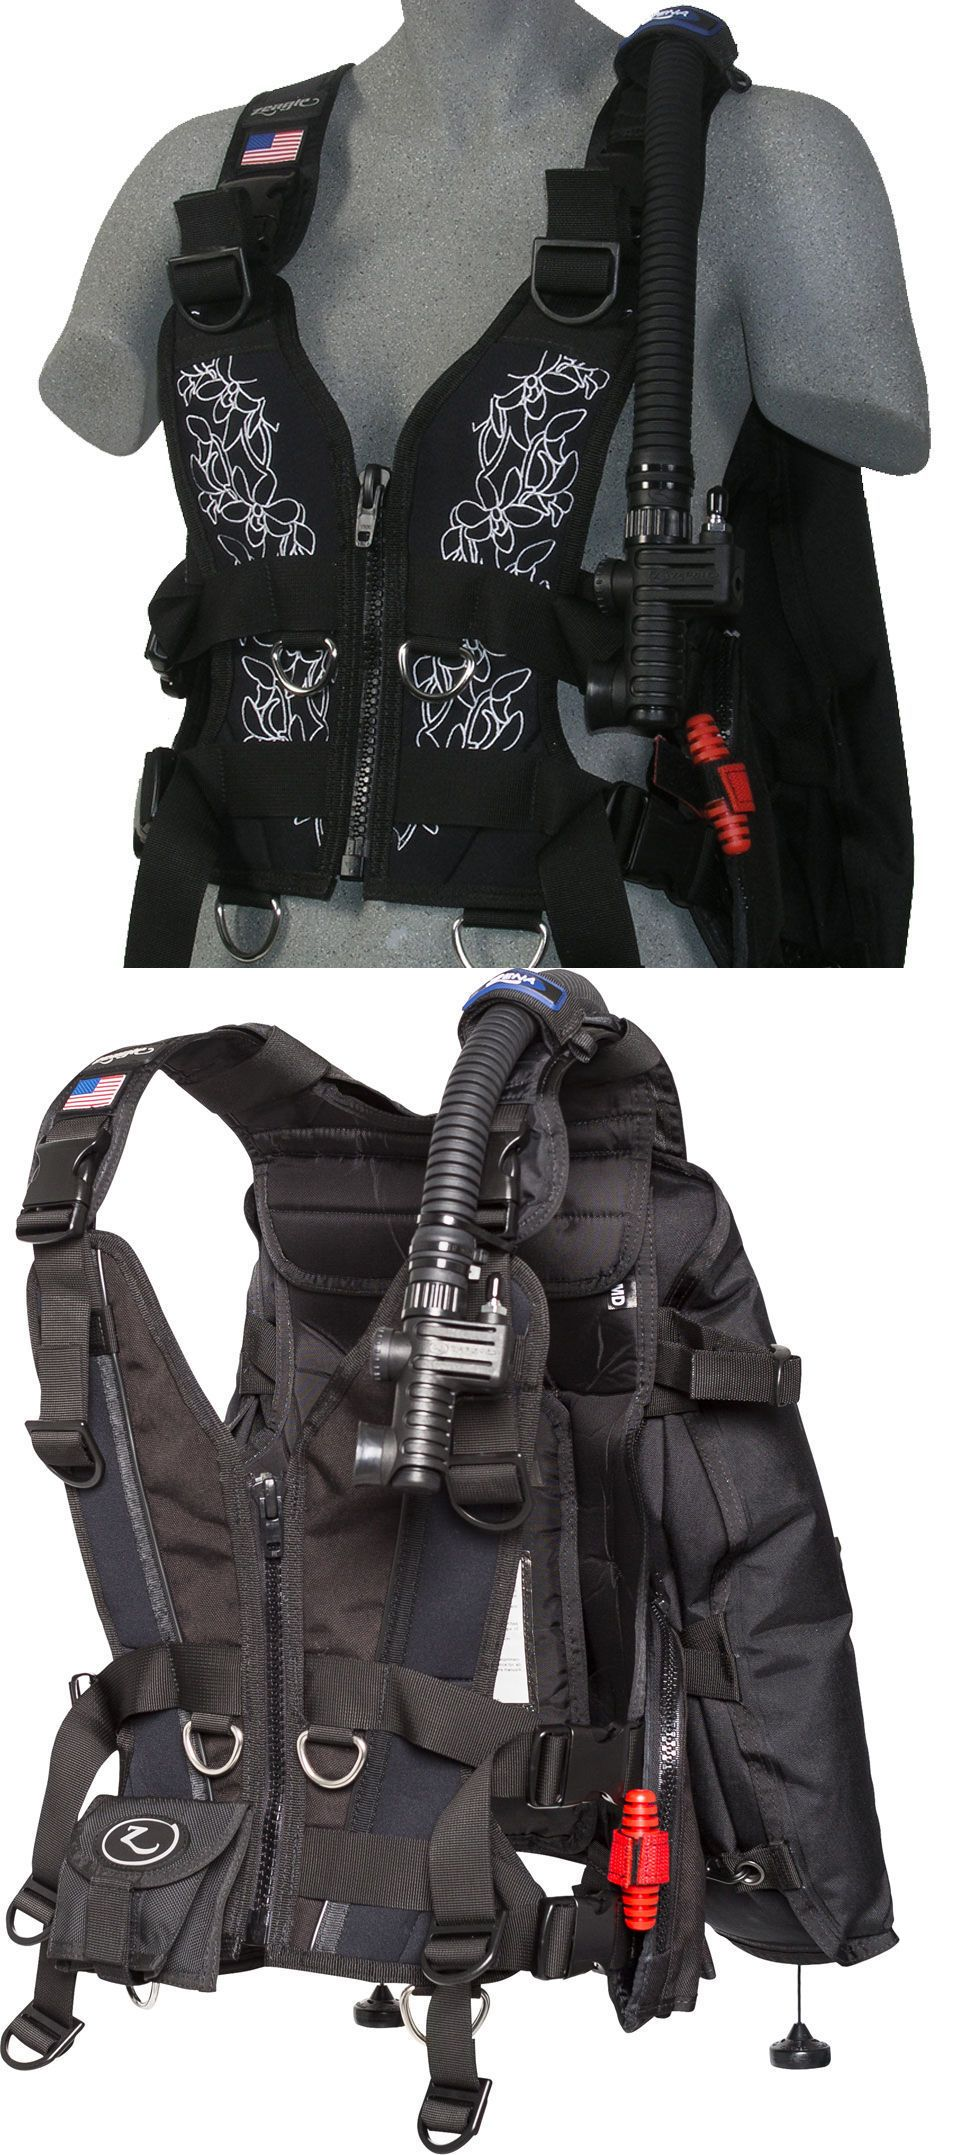 Buoyancy Compensators 16053: Zeagle Womens Scuba Diving Zena Bcd/Bc With Rip Cord System, Small BUY IT NOW ONLY: $588.0